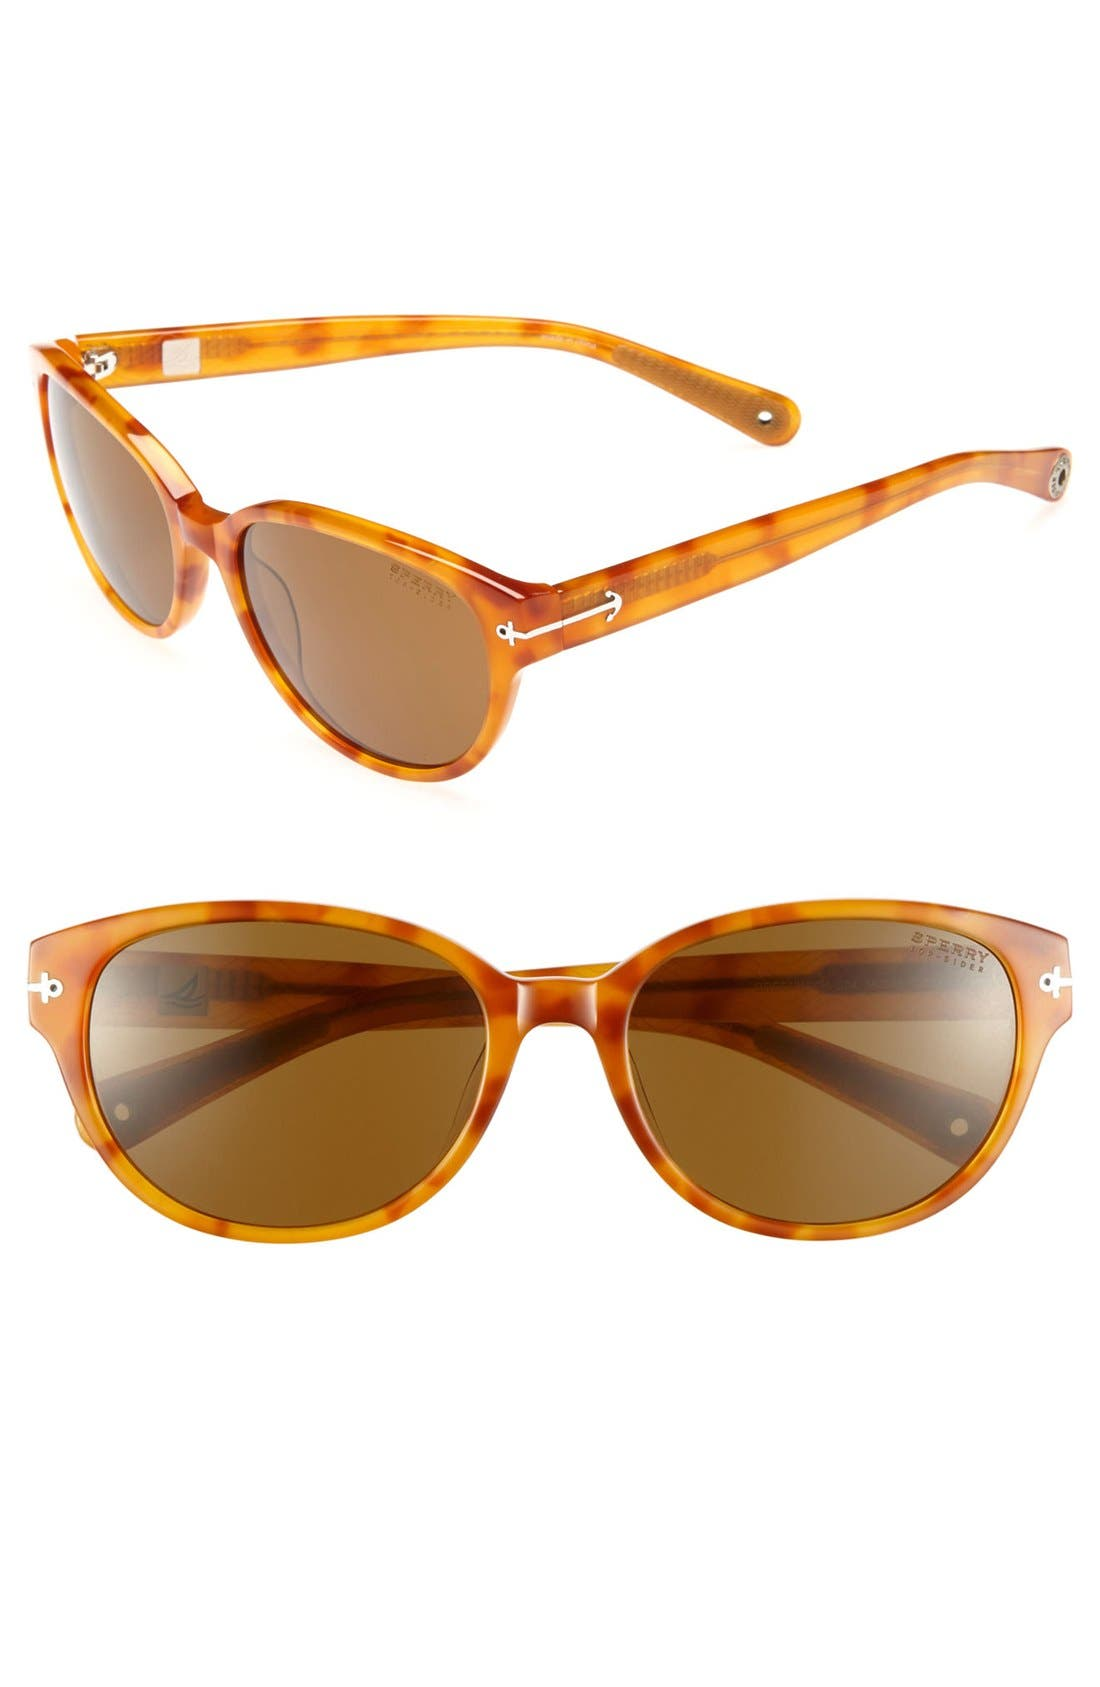 Main Image - Sperry Top-Sider® 'Greenwich' 56mm Sunglasses (Online Only)